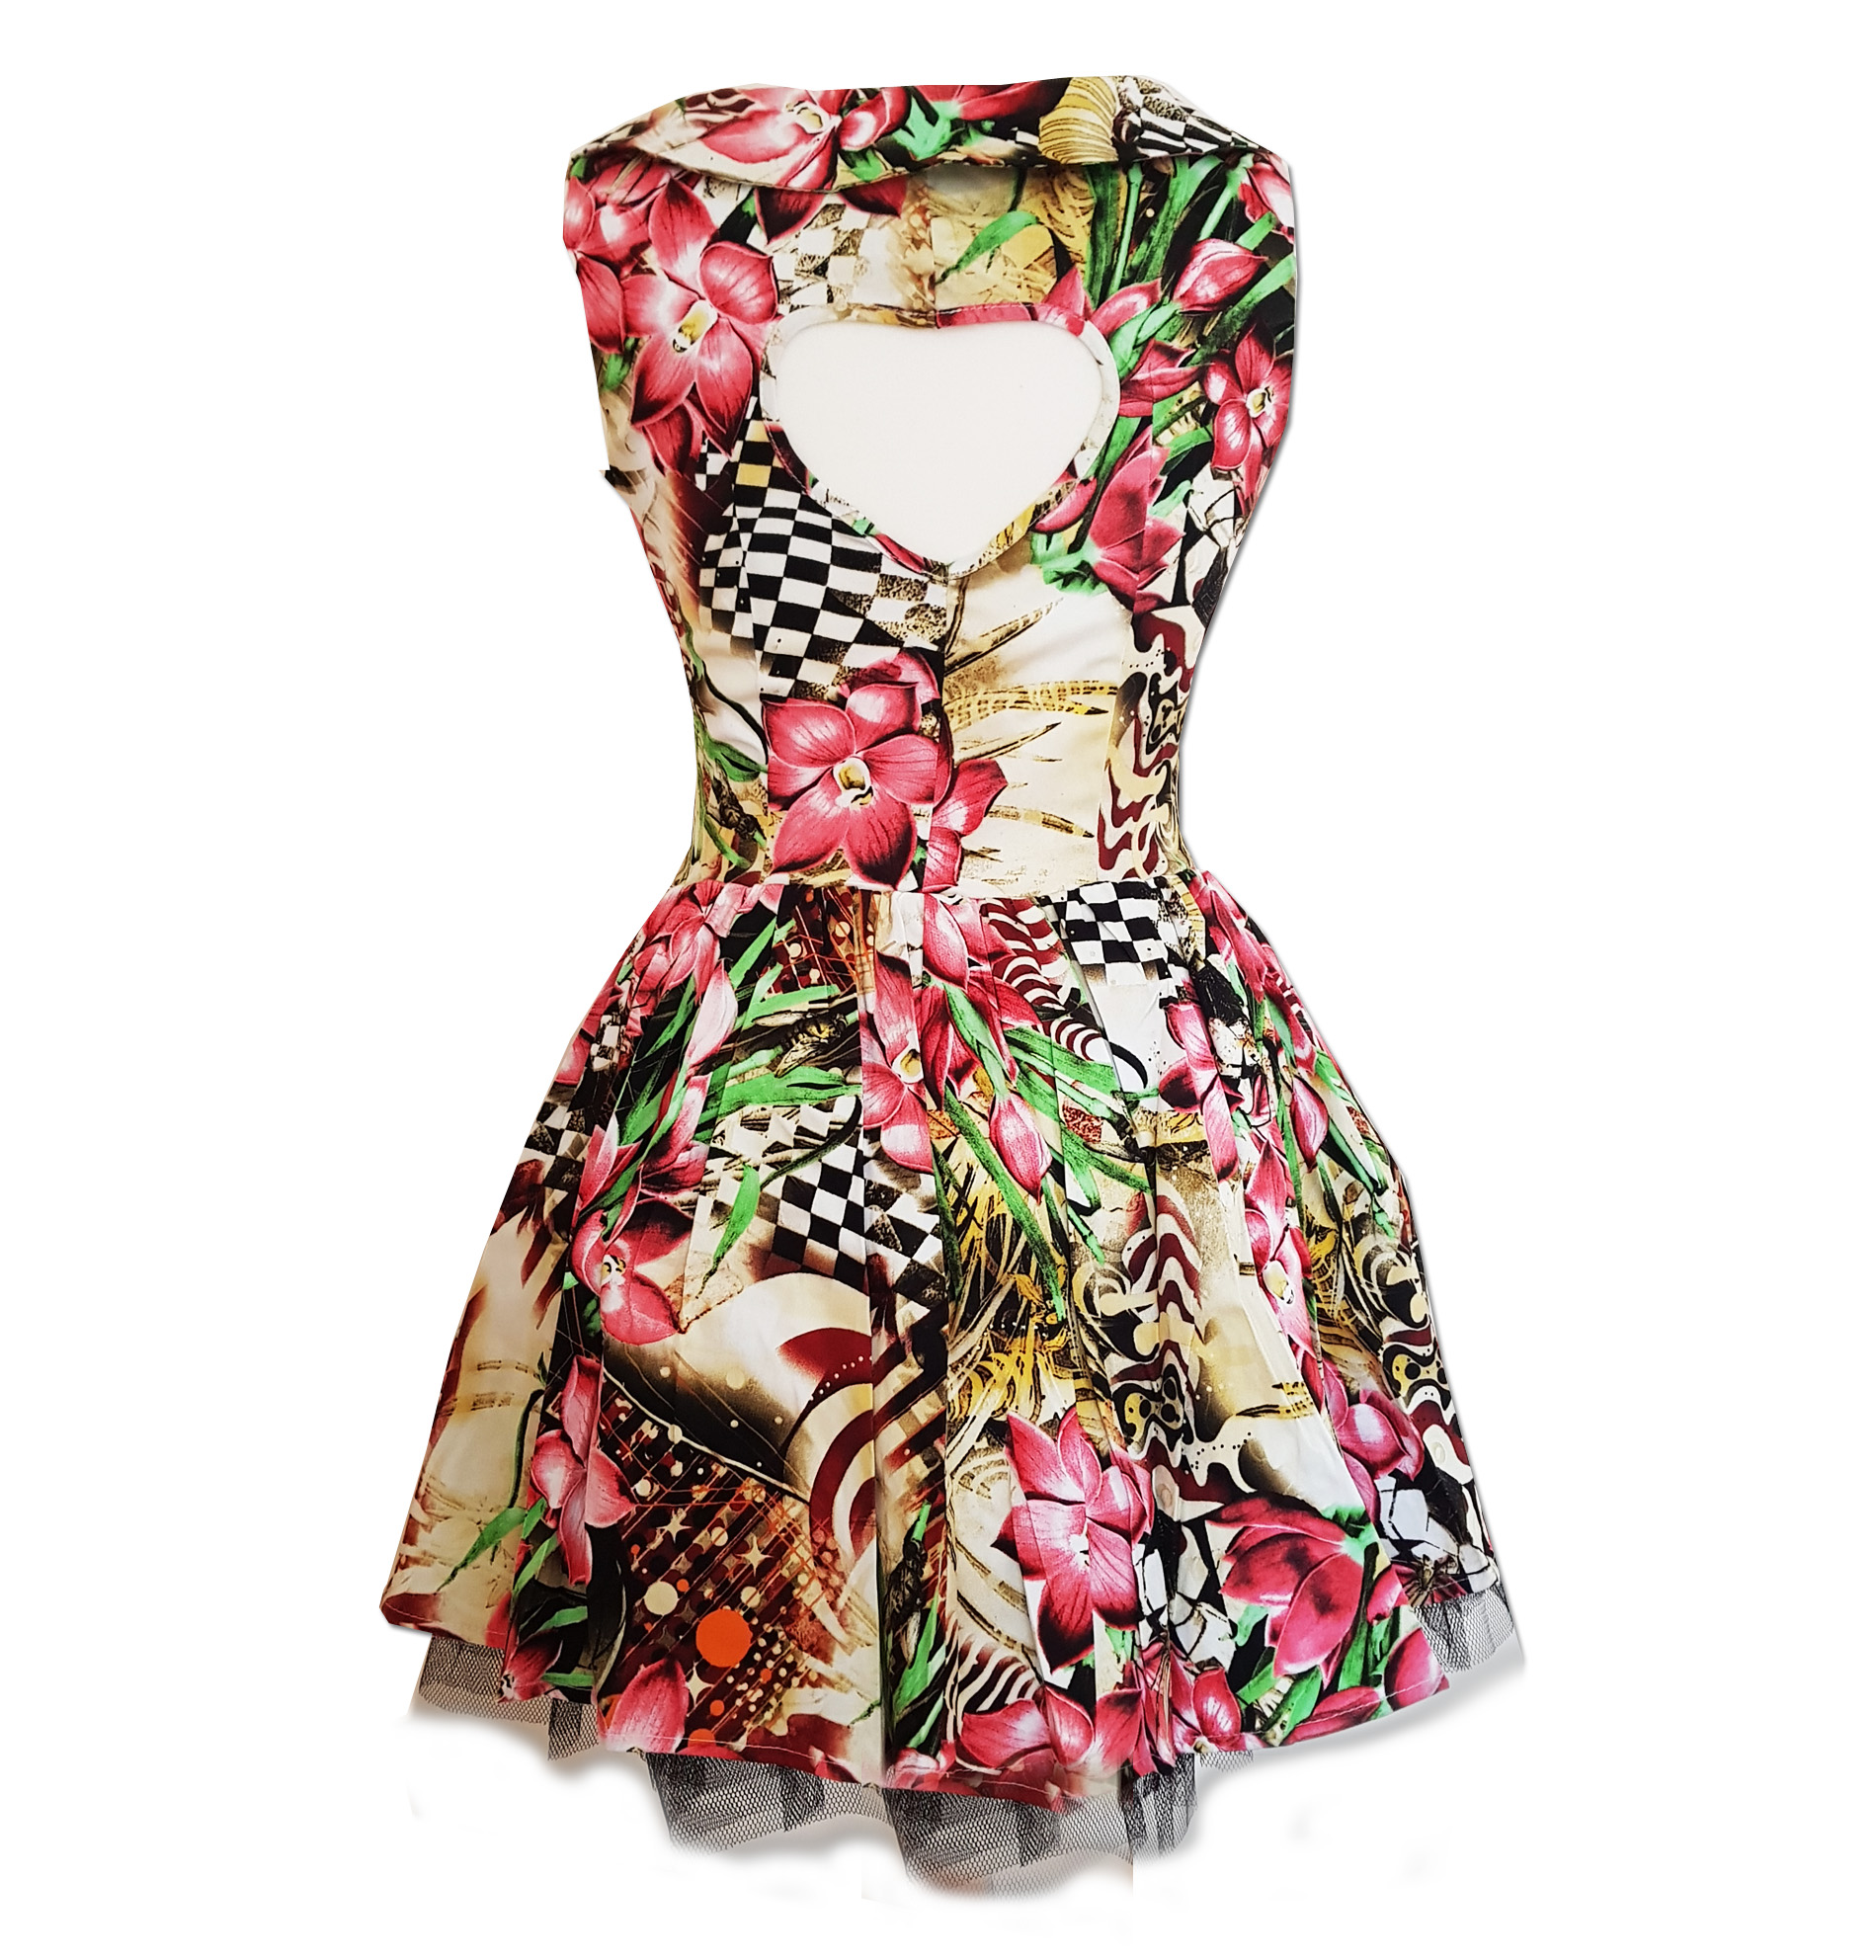 H-amp-R-Hearts-amp-Roses-London-Pink-Mini-Dress-039-Lily-Checkerboard-039-Flowers-All-Sizes thumbnail 9